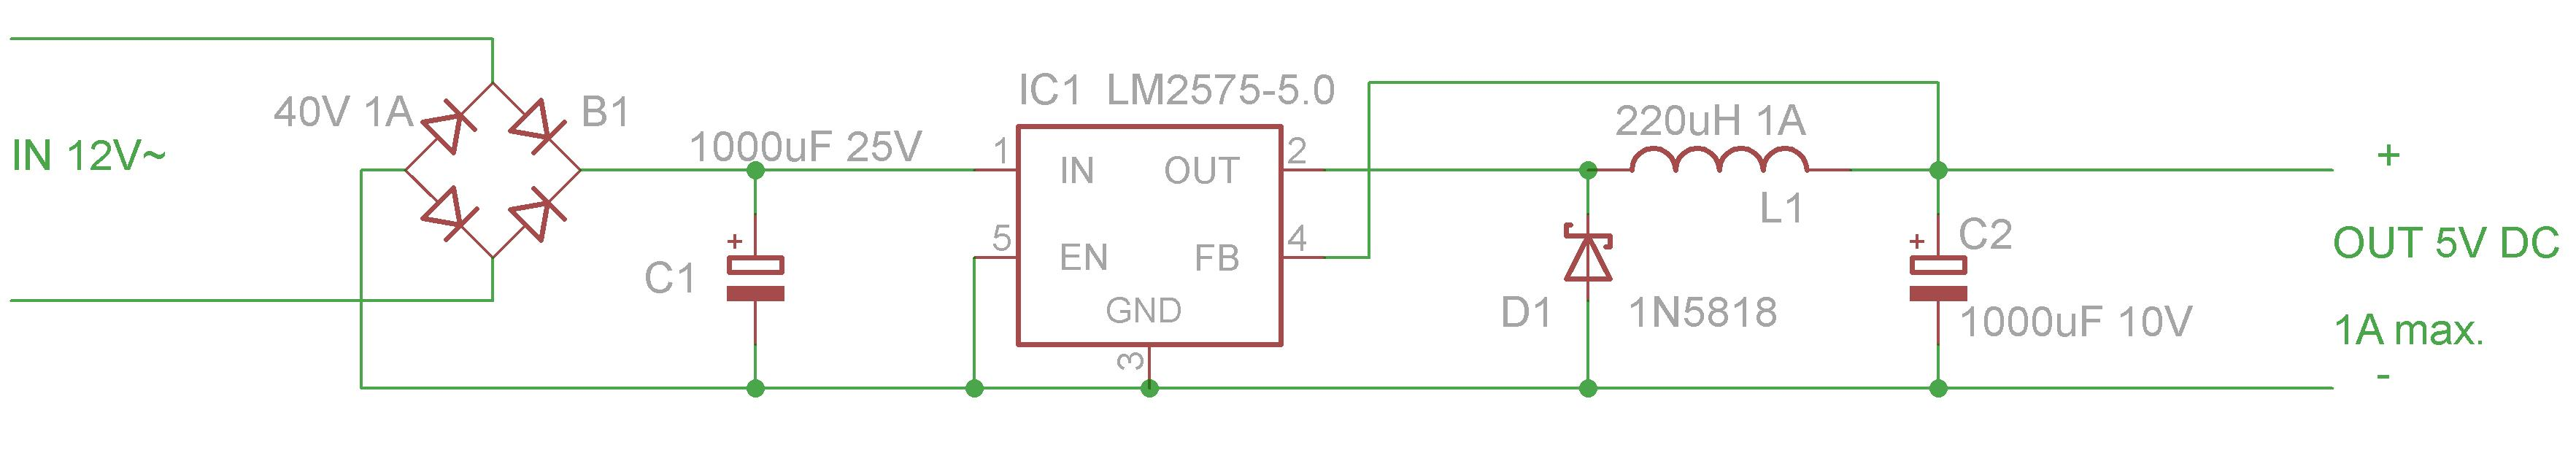 Transformerless Power Supply 12v 3a Circuit Diagram also Smps 5v 1a Circuit Diagram together with  on transformerless power supply from 220v with lm2575